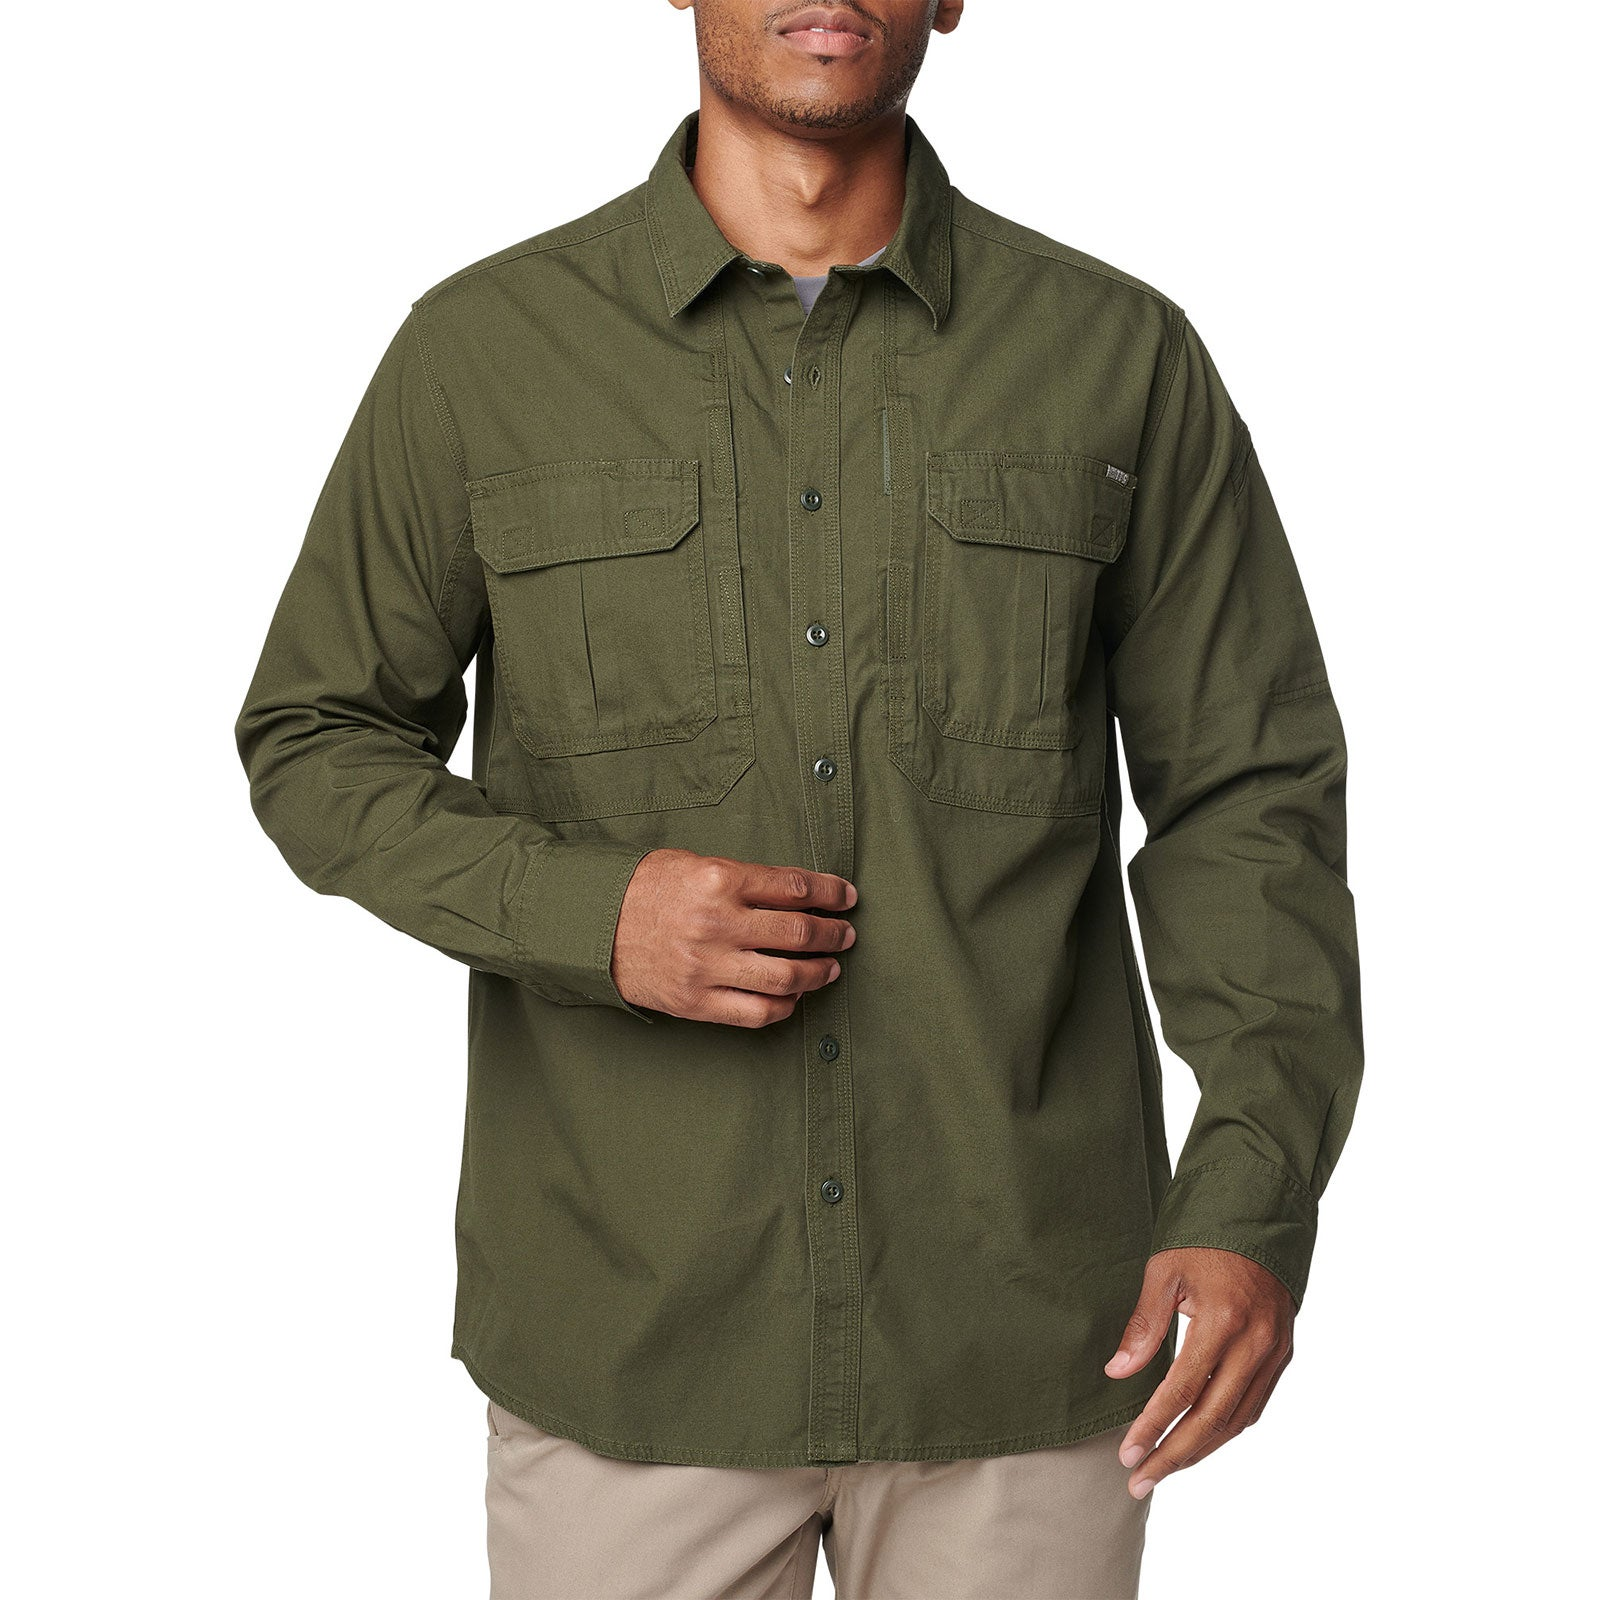 5.11 Tactical Expedition L/s Skjorte